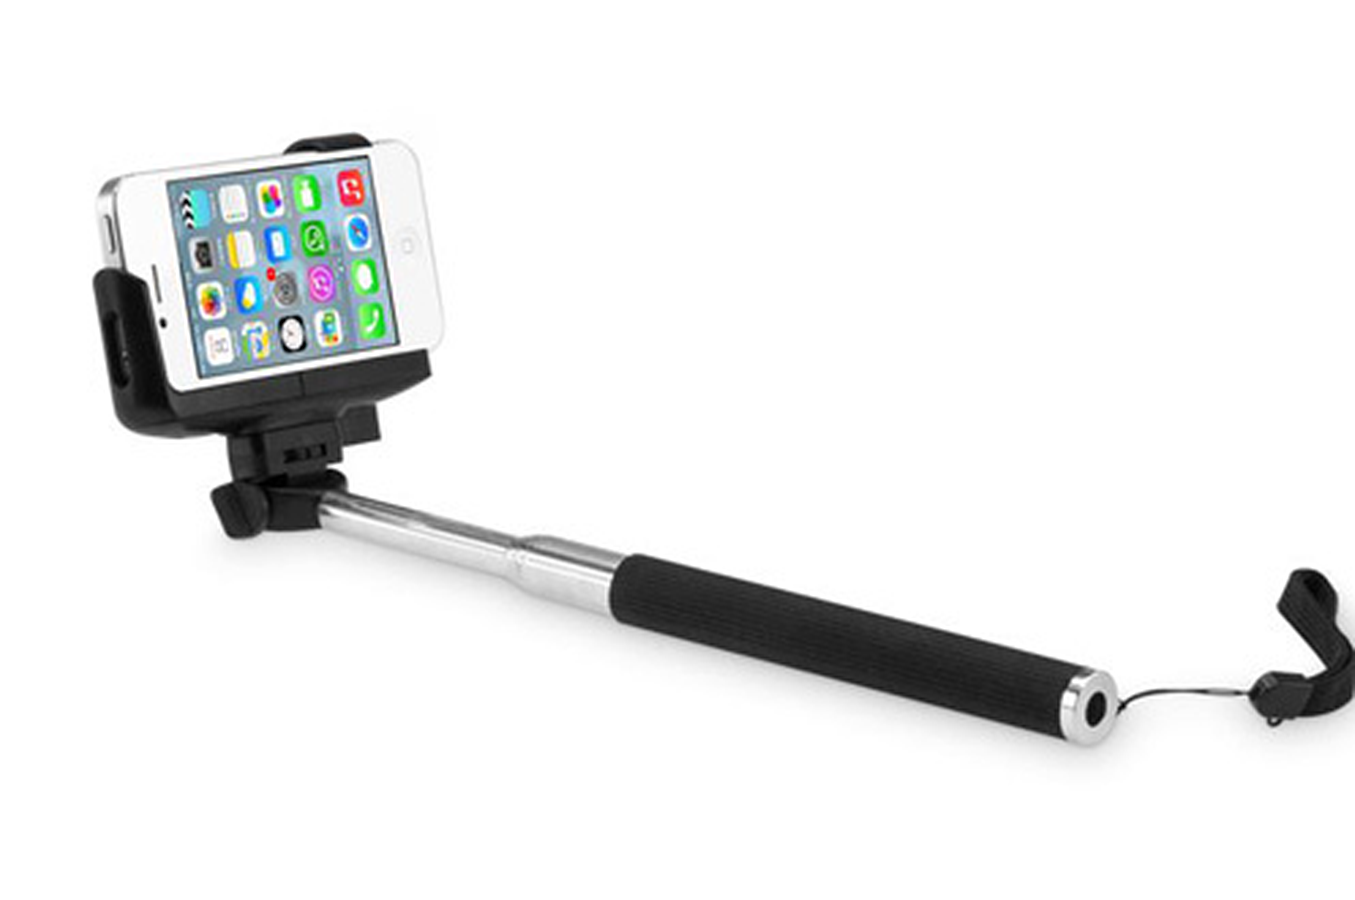 Support pour t l phone mobile mobility lab perche selfie for Support telephone portable